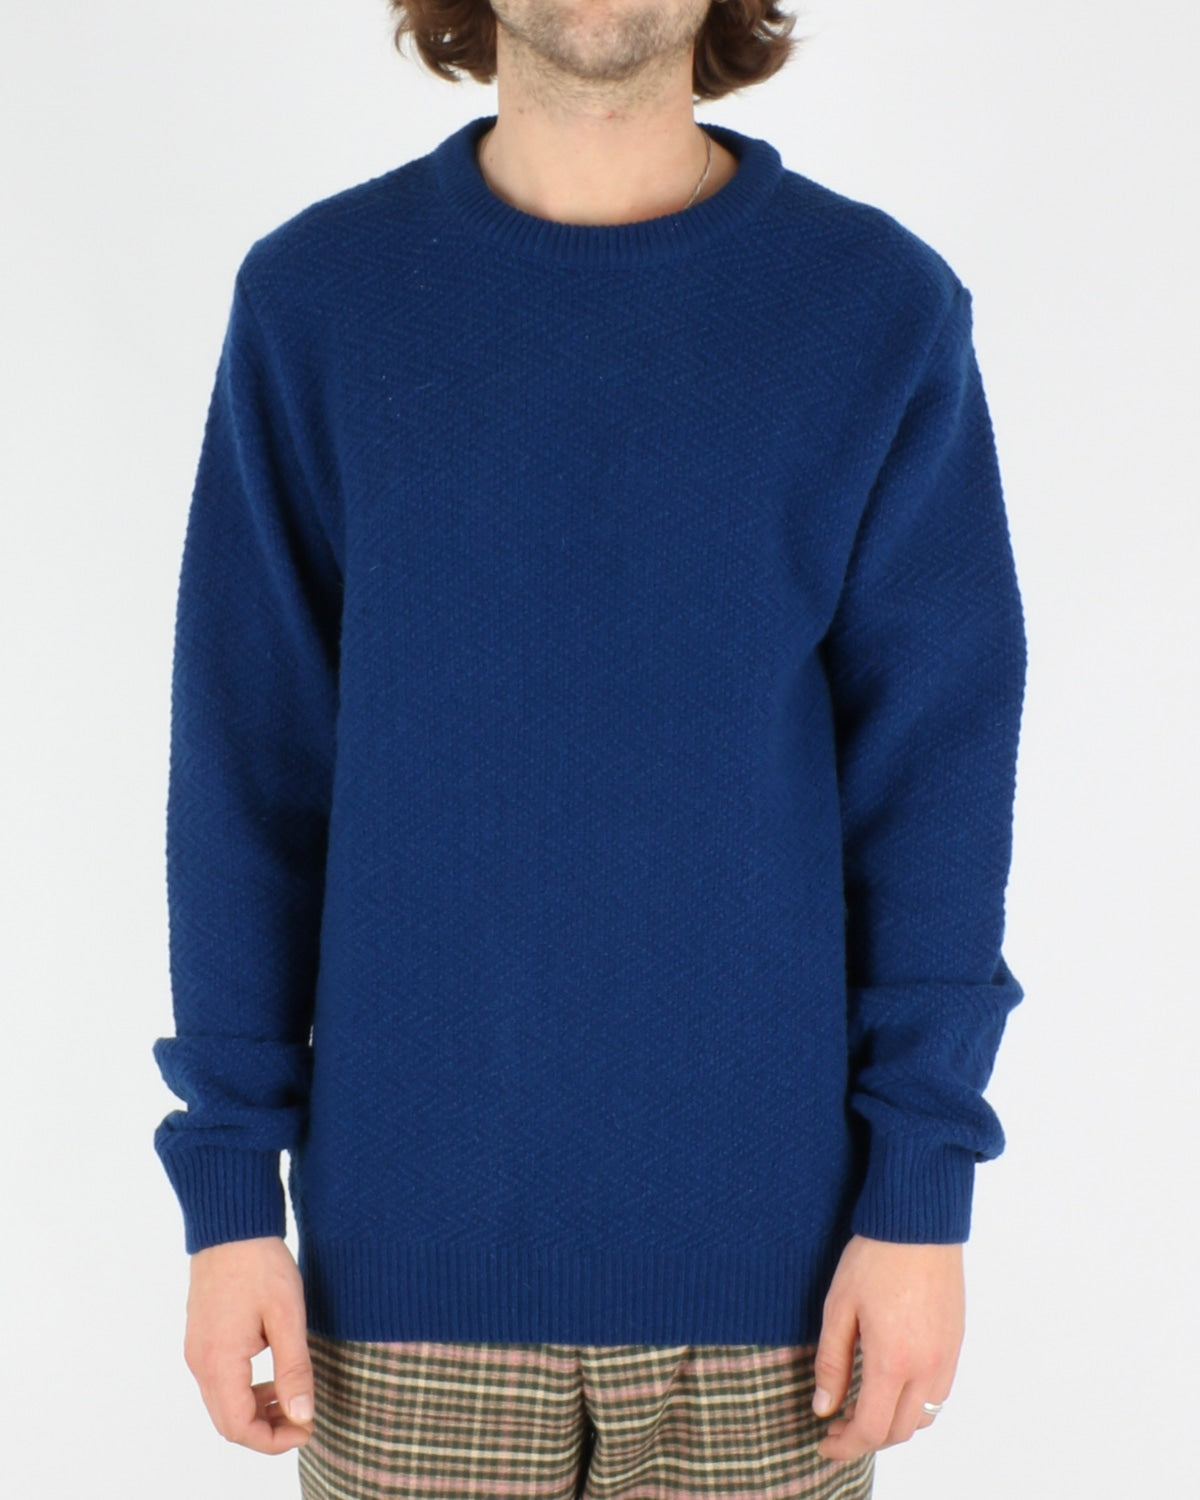 soulland_cassidy herringbone sweater_blue_1_4